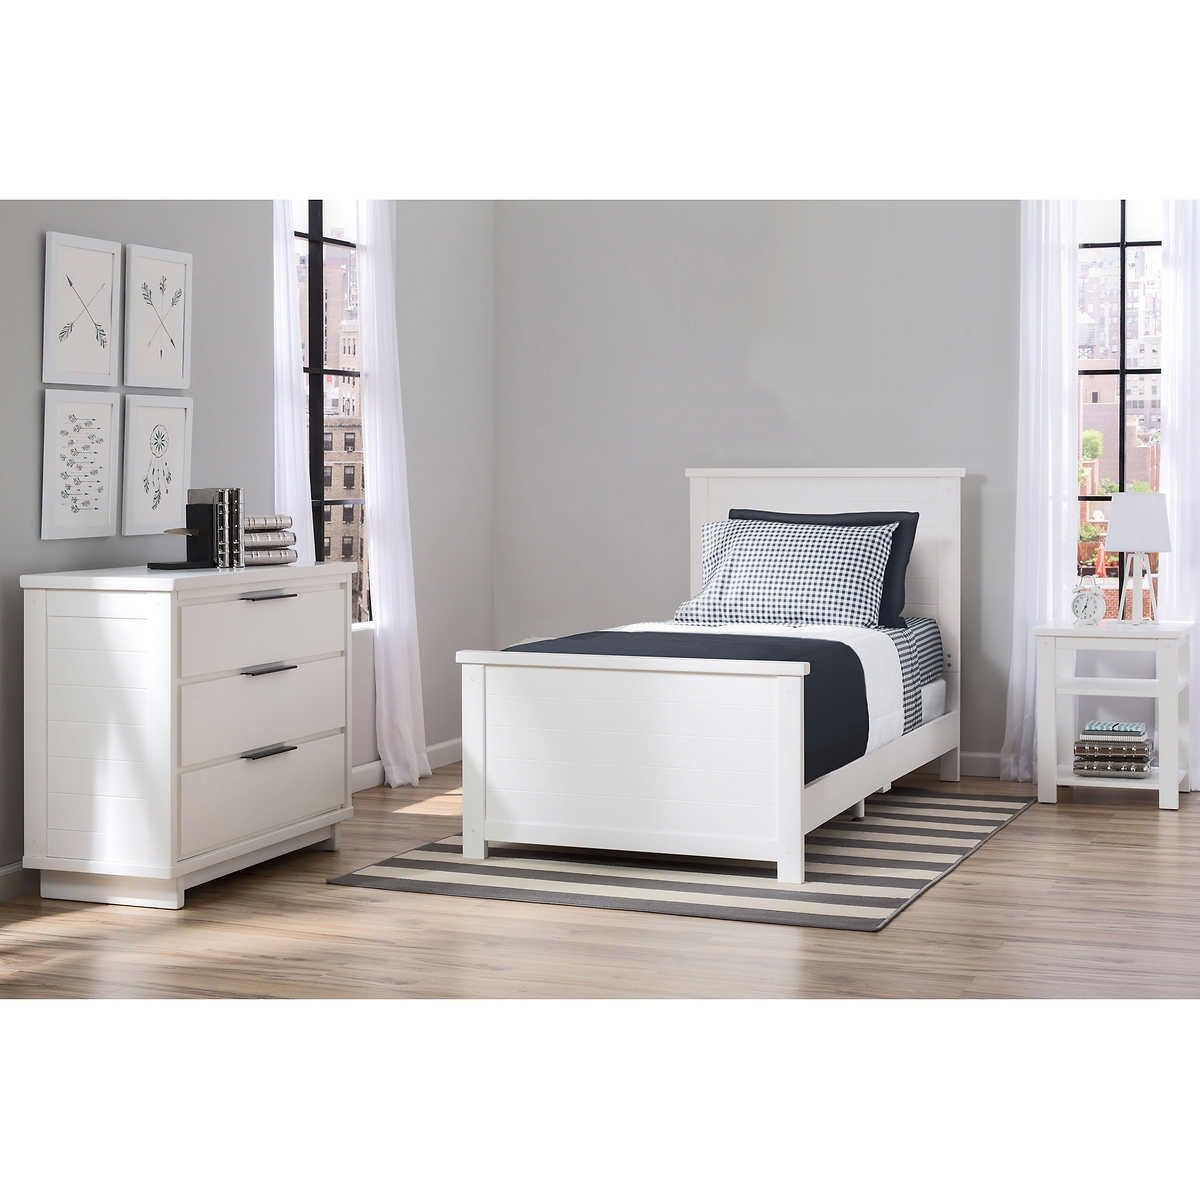 749 for 3 pieces  bed nightstand dresser  twin